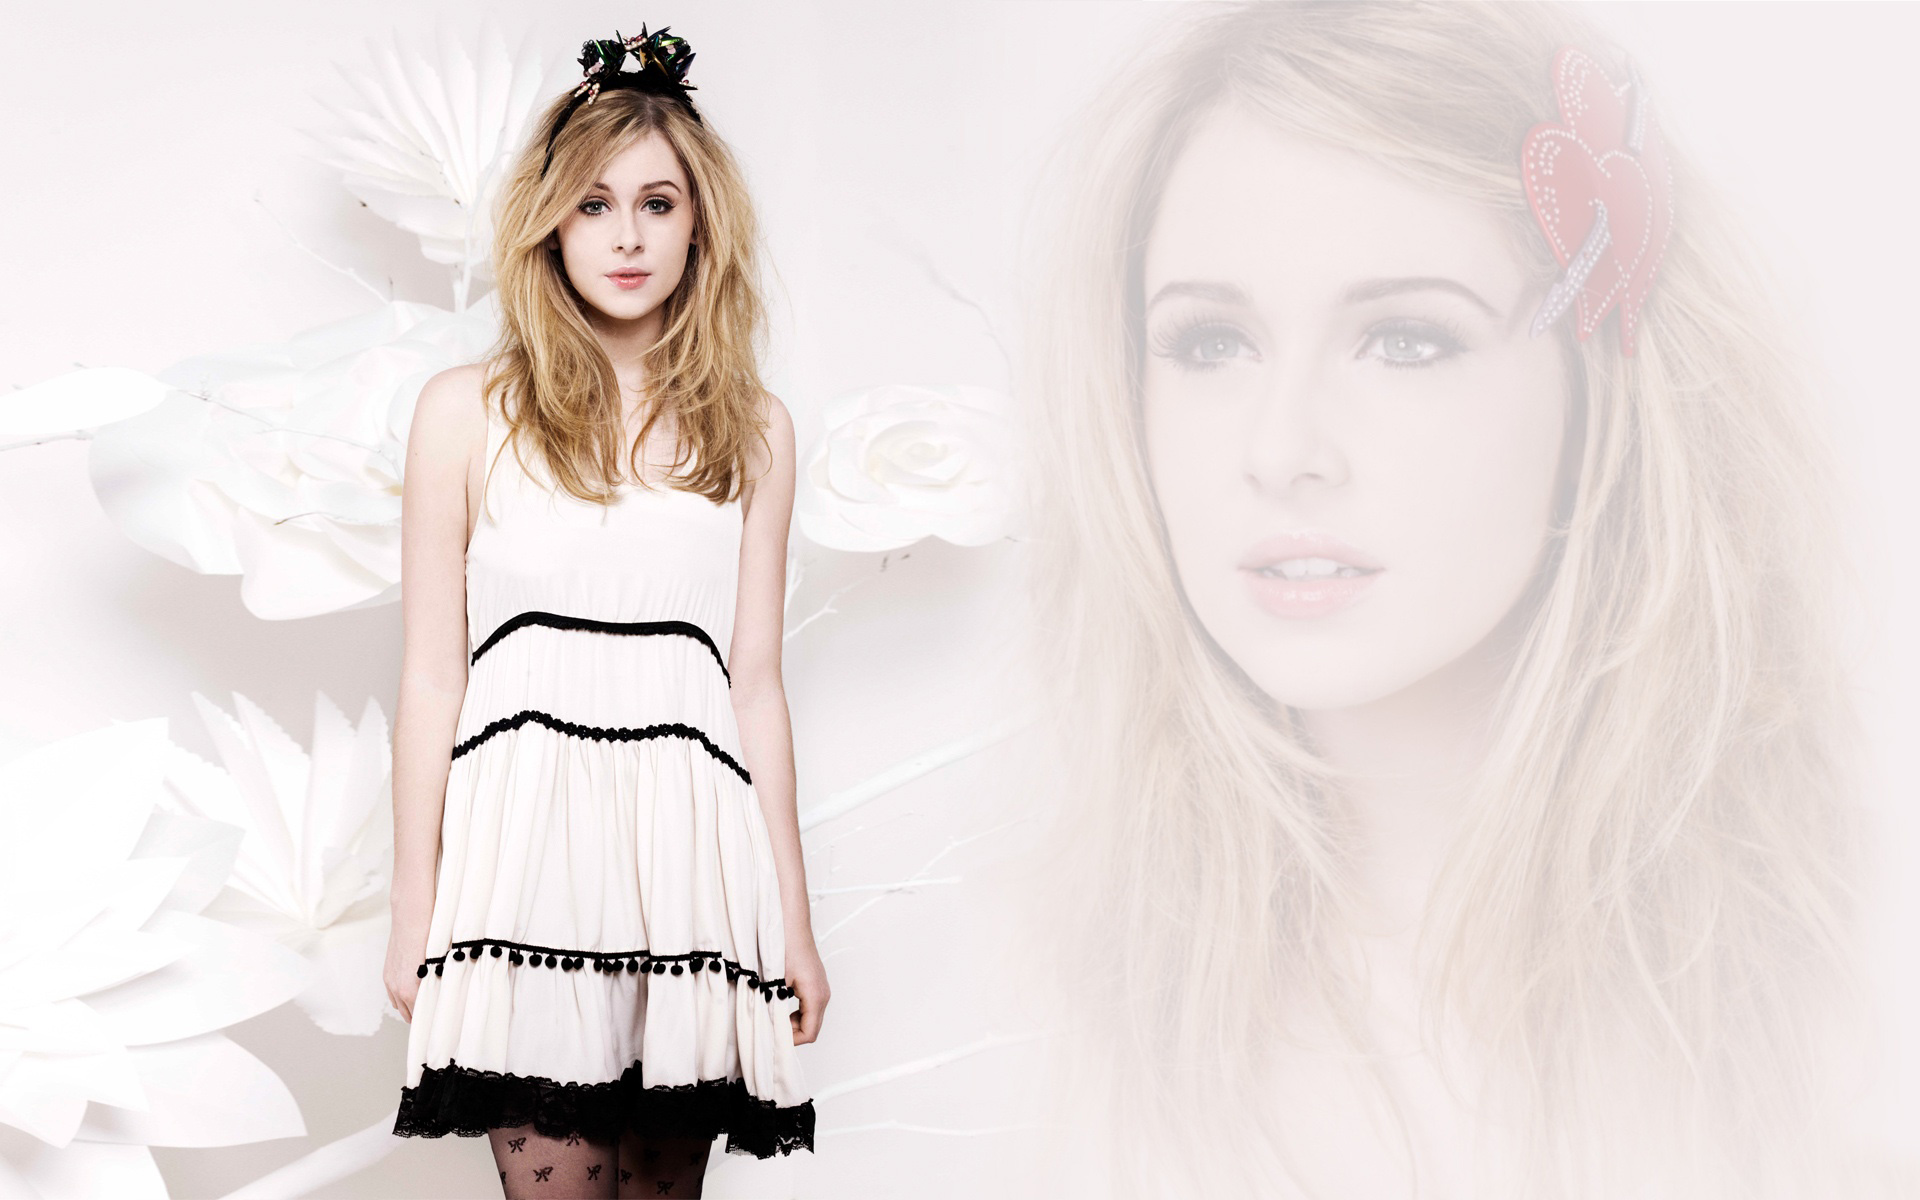 Actress Diana Vickers 352.53 Kb